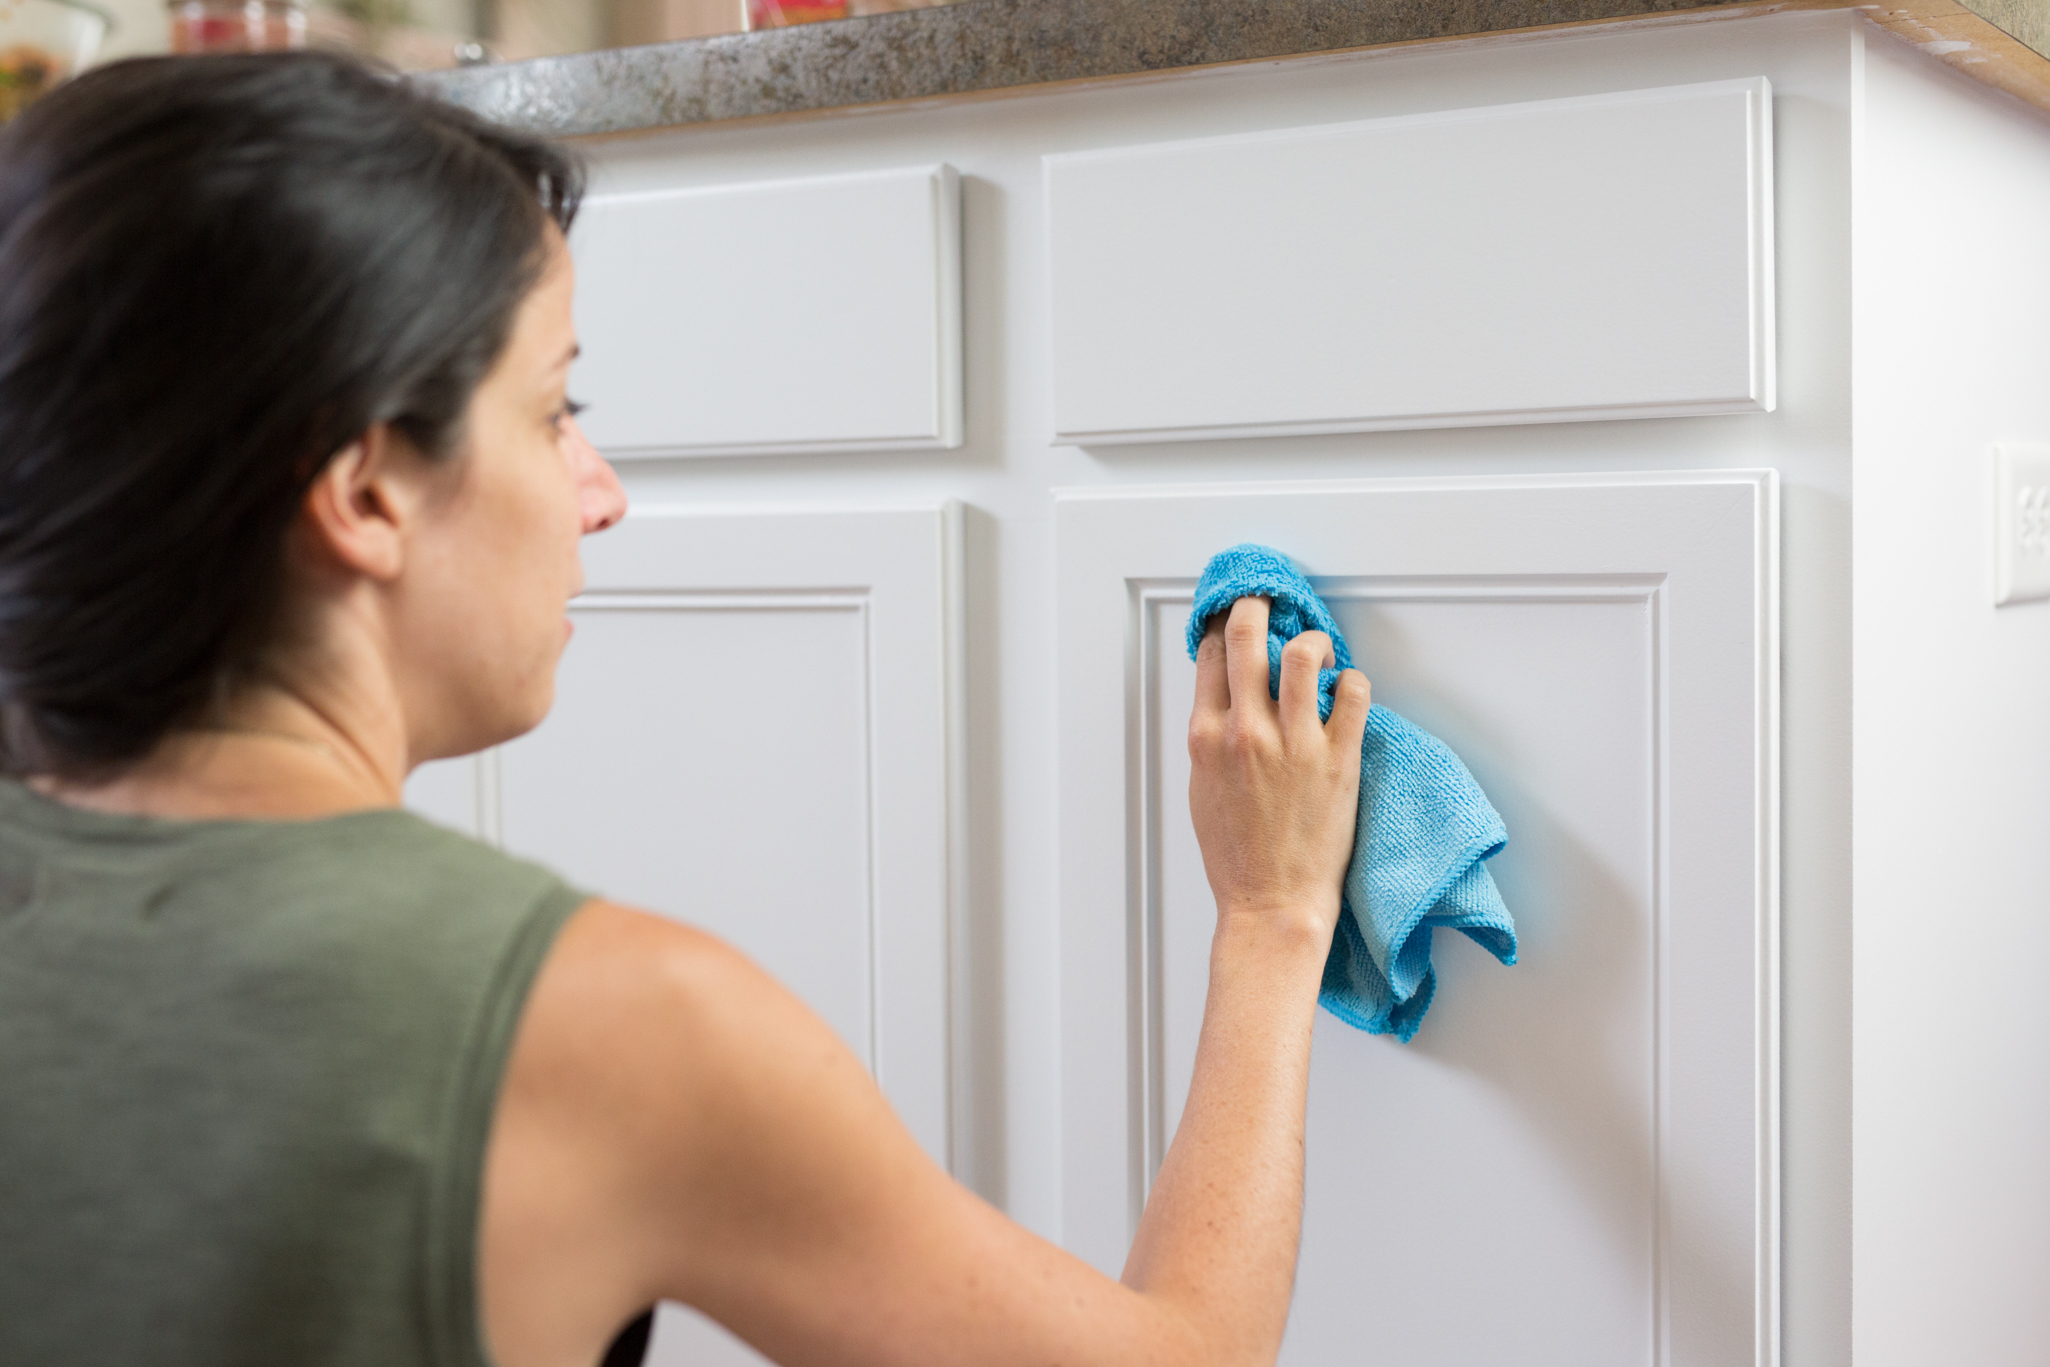 How To Clean Painted Kitchen Cabinets How To Clean Painted Wood Cabinets | Kitchn